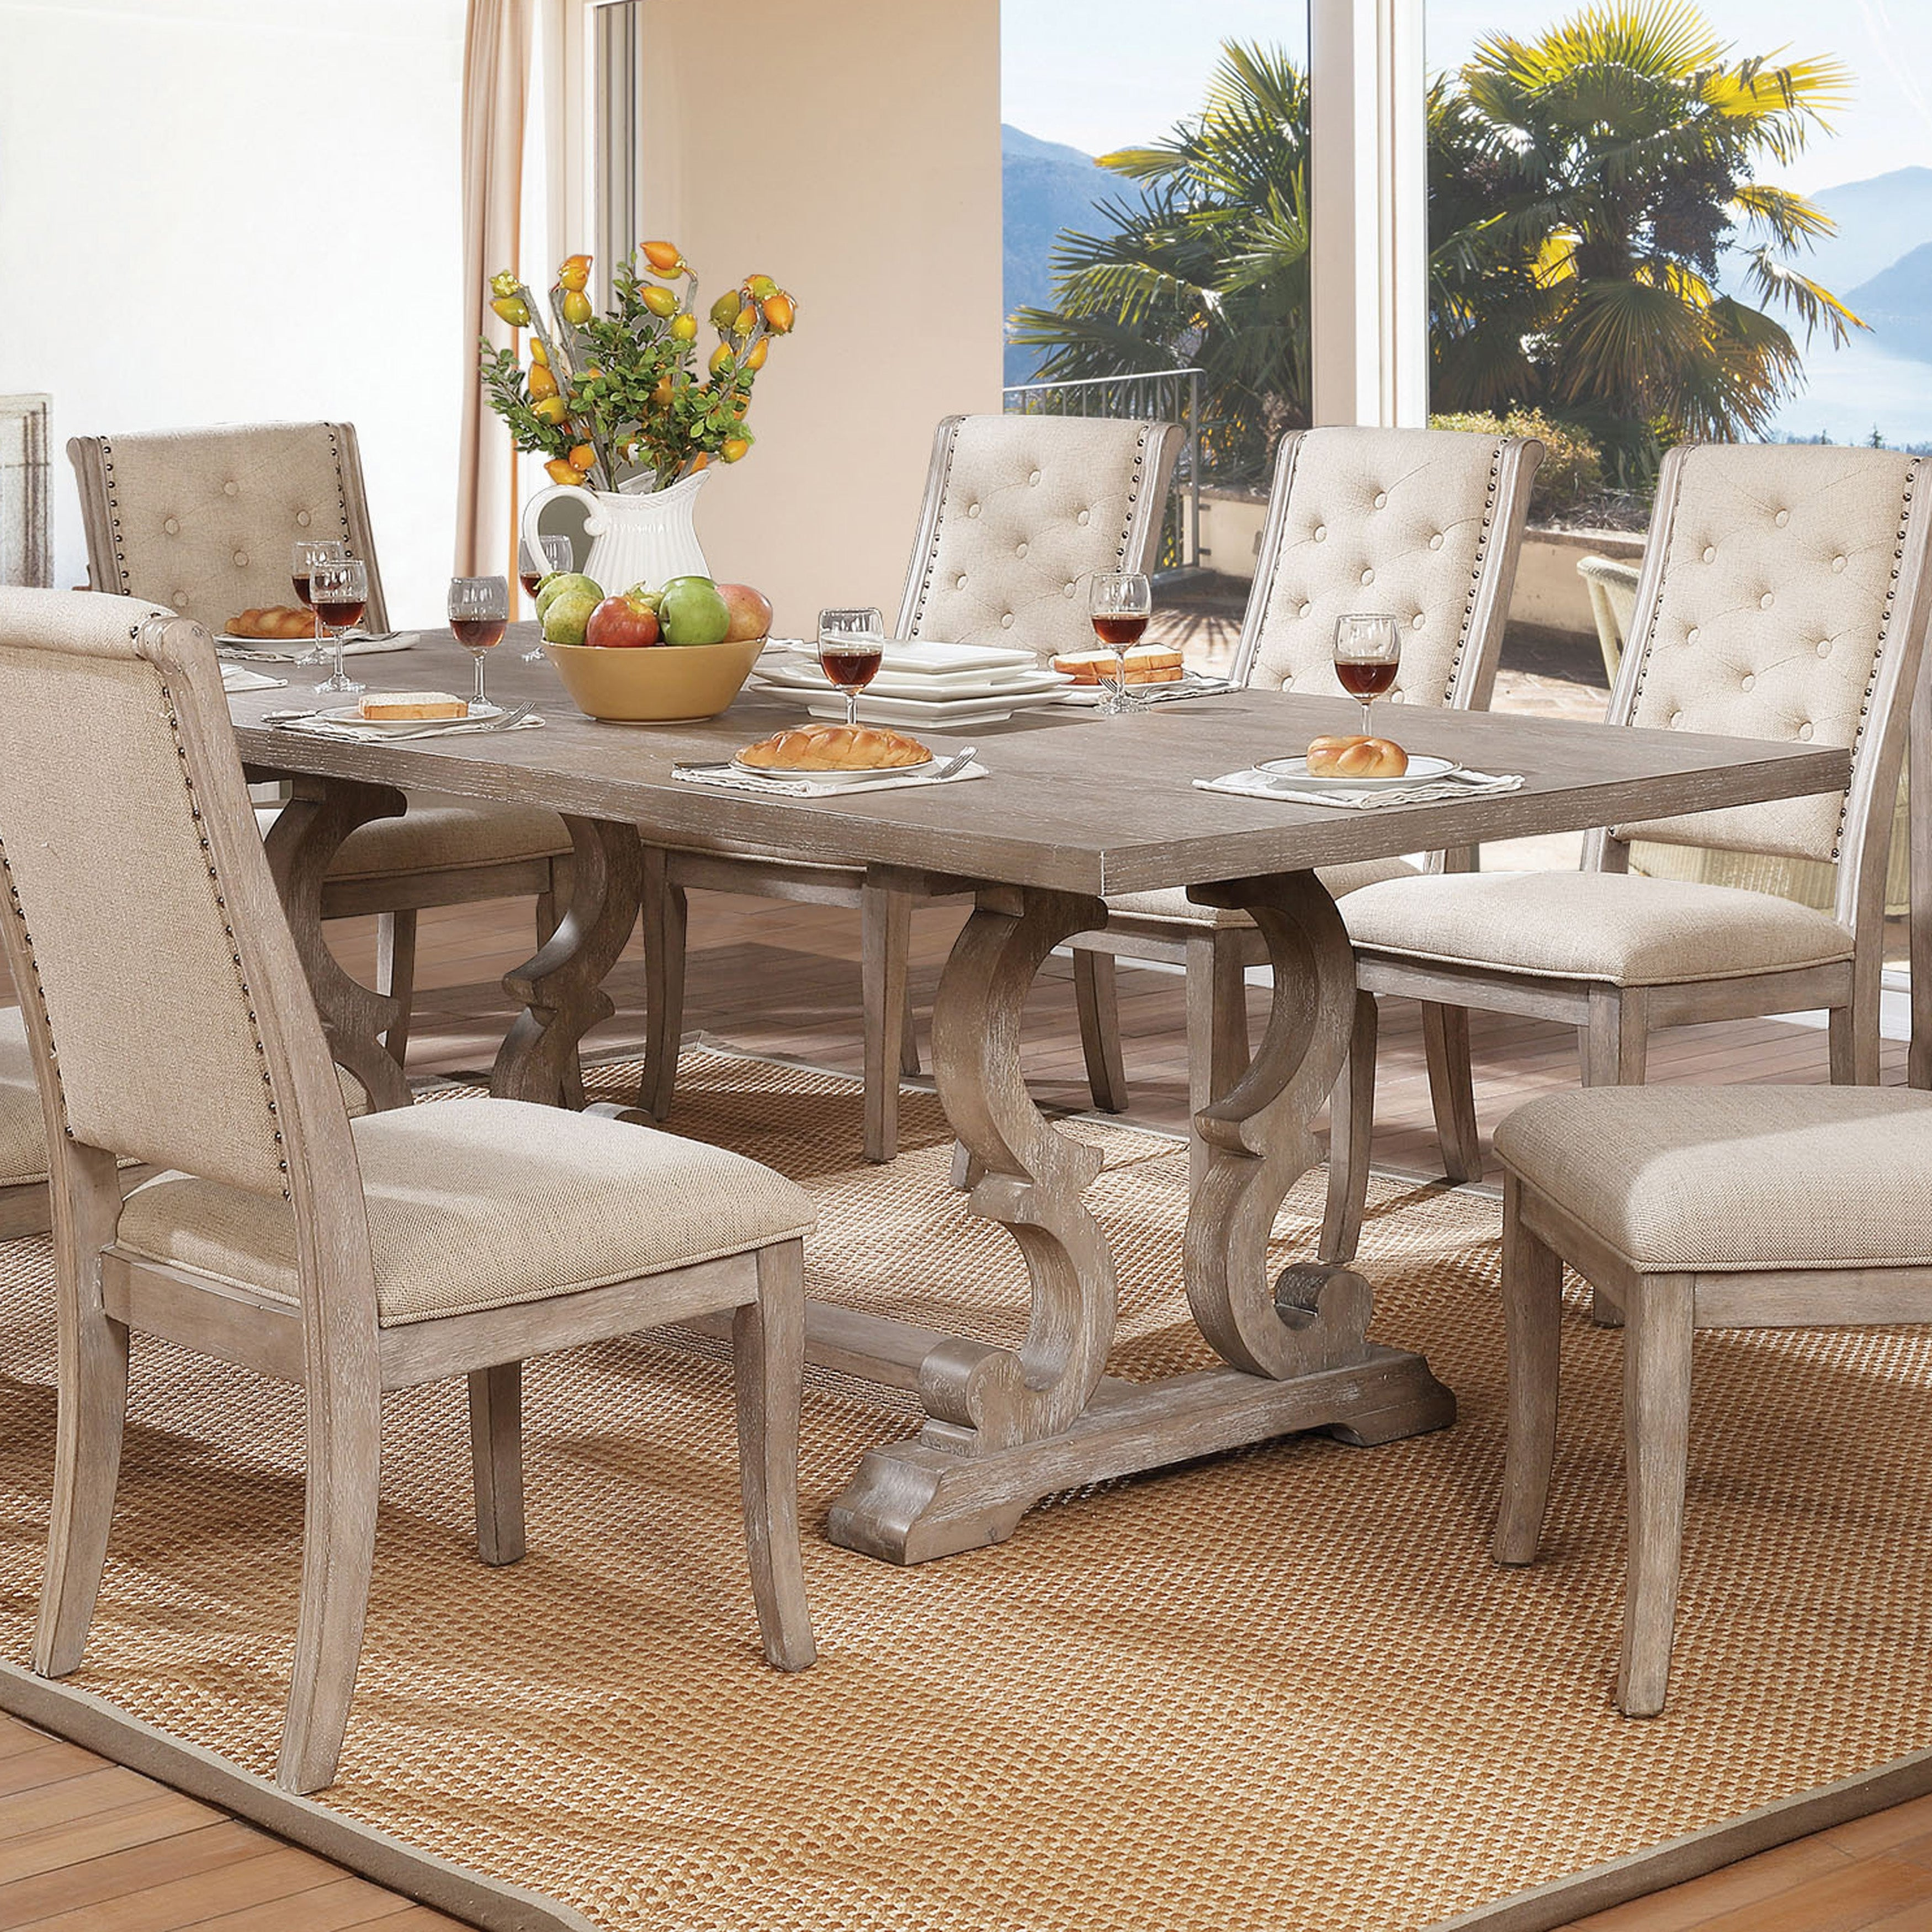 Picture of: The Gray Barn Windswept Rustic Finish Dining Table With Leaf On Sale Overstock 23570126